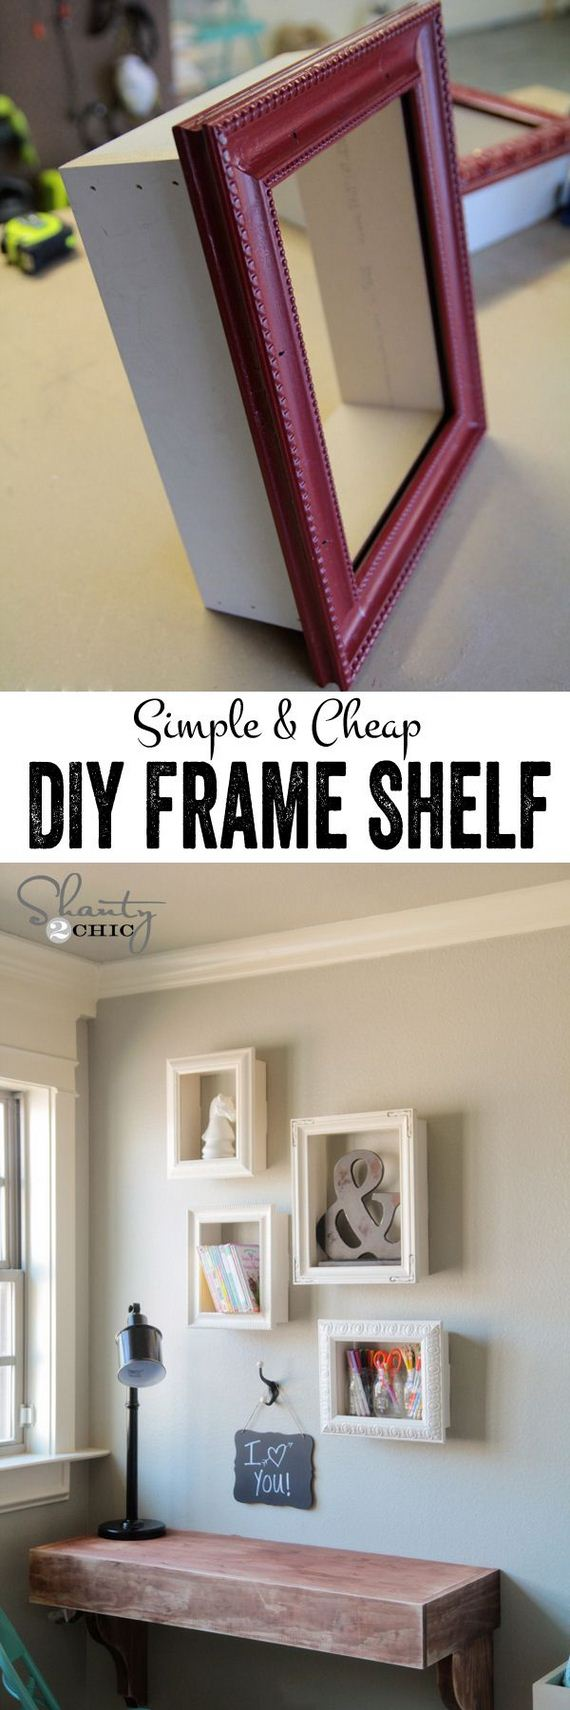 14-cheap-awesome-diy-home